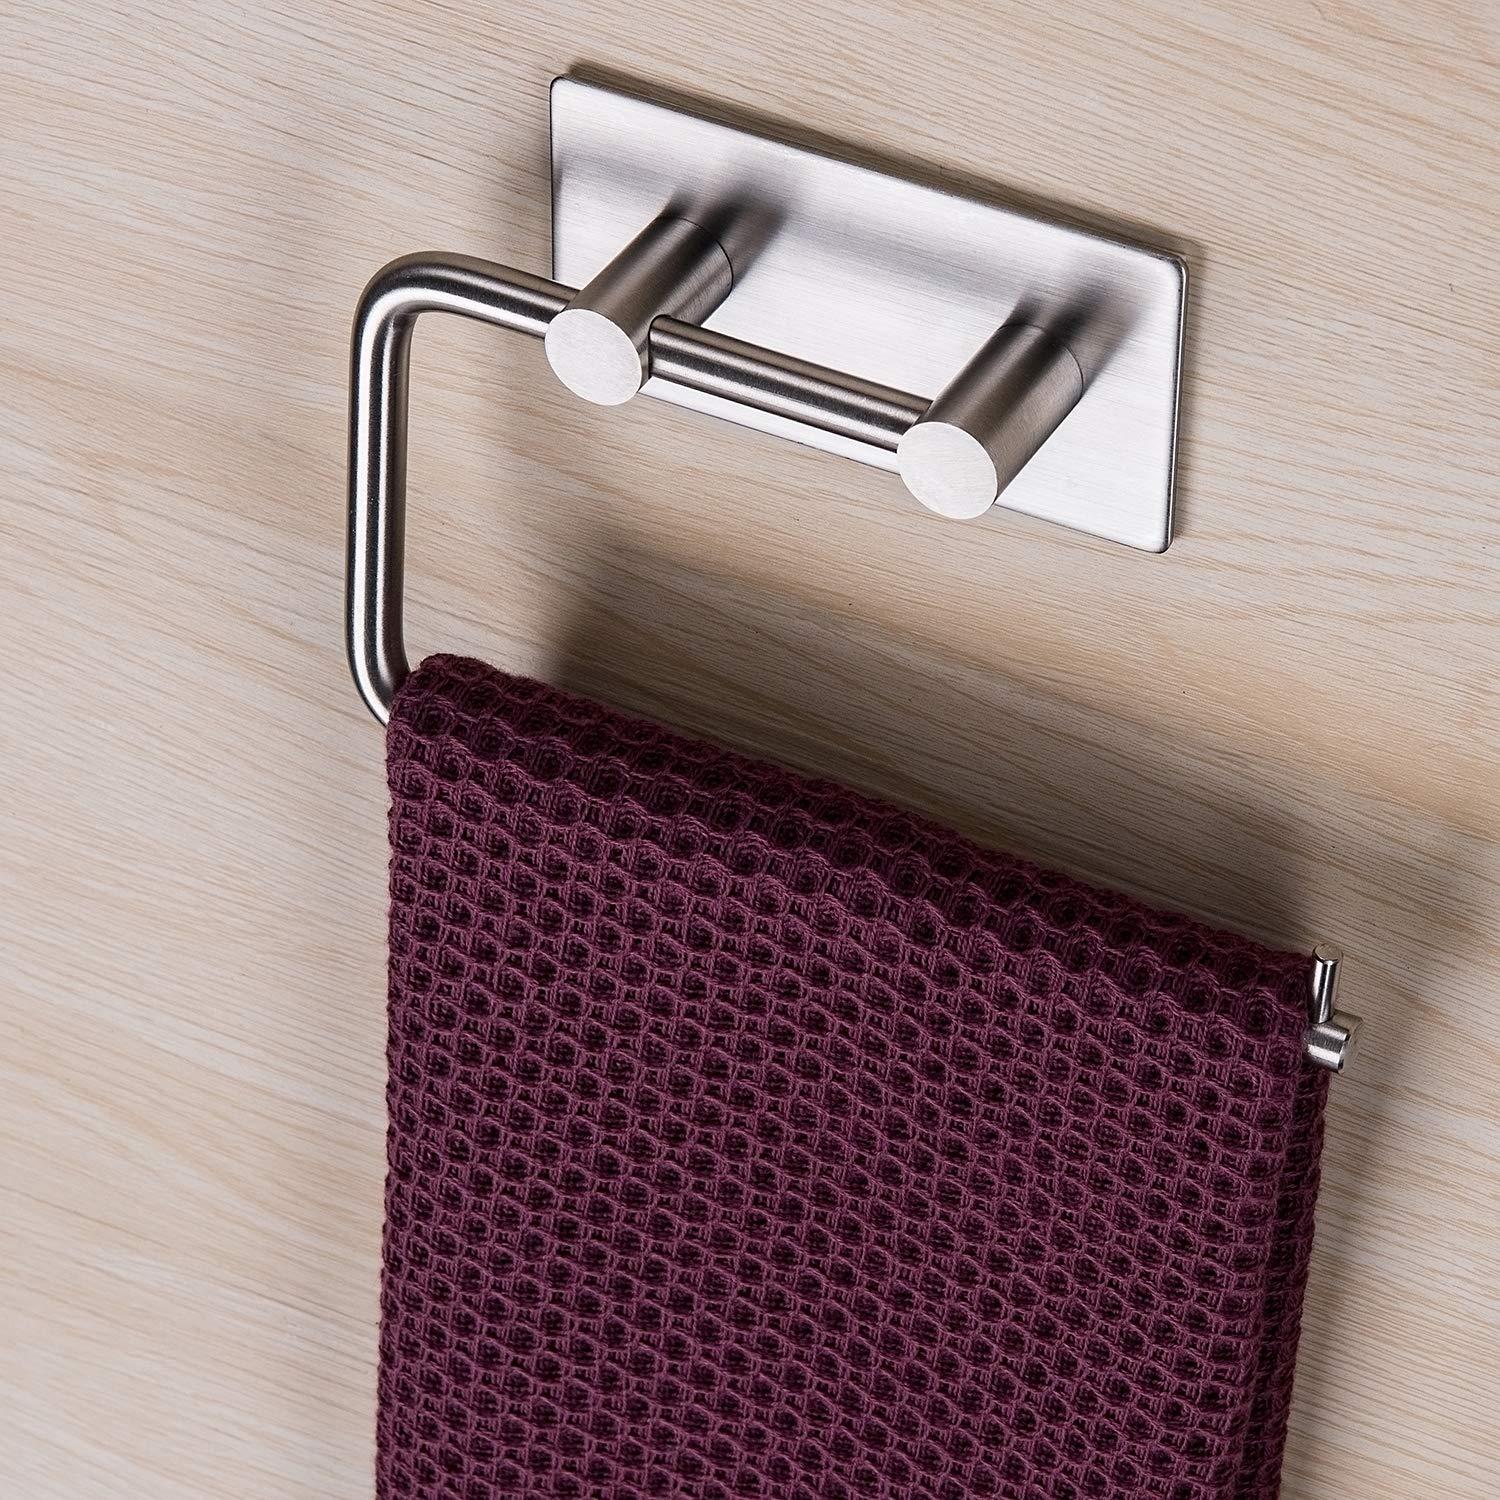 ZUNTO Bathroom Hand Towel Ring - Hand Towel Holder Self Adhesive No Drilling, SUS 304 Stainless Steel Brushed by ZUNTO